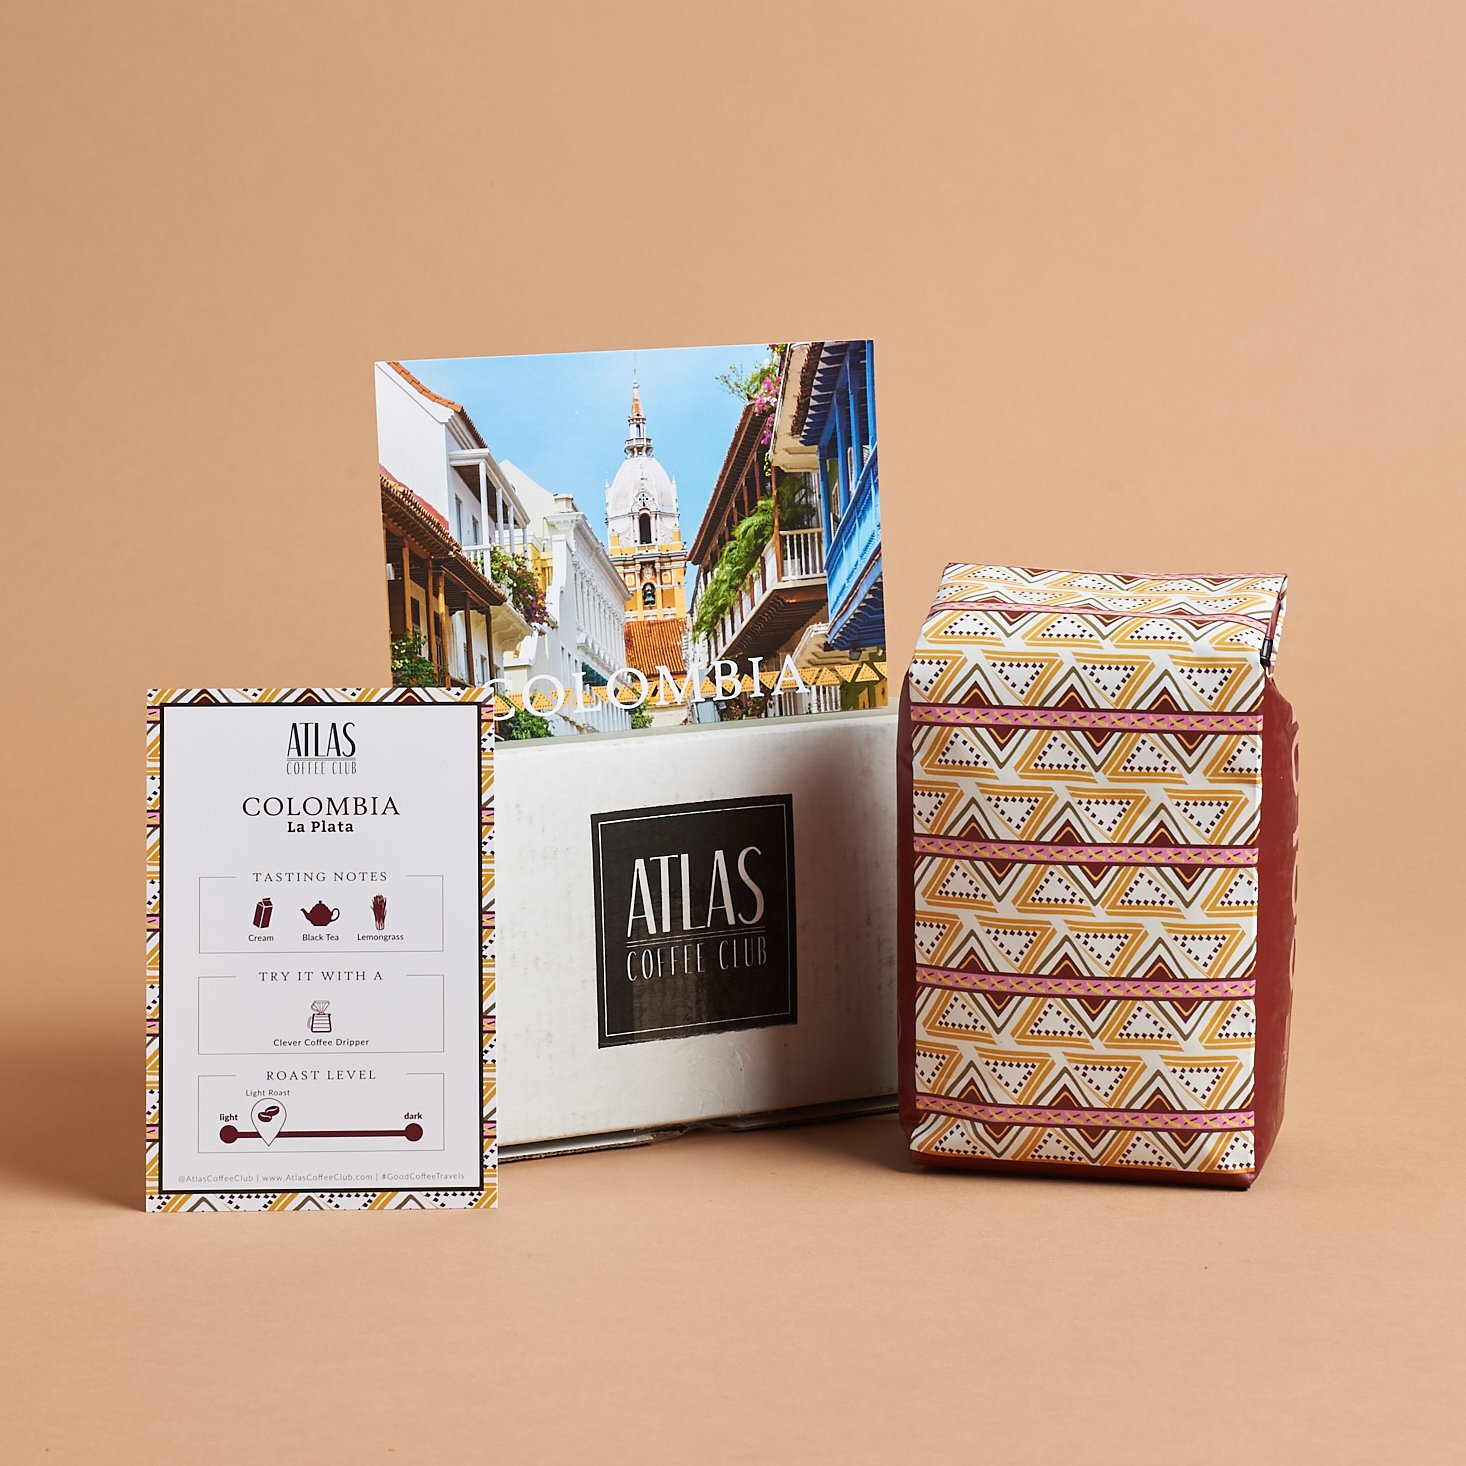 My Atlas Coffee Club Review—Is This Coffee Subscription Worth Trying?